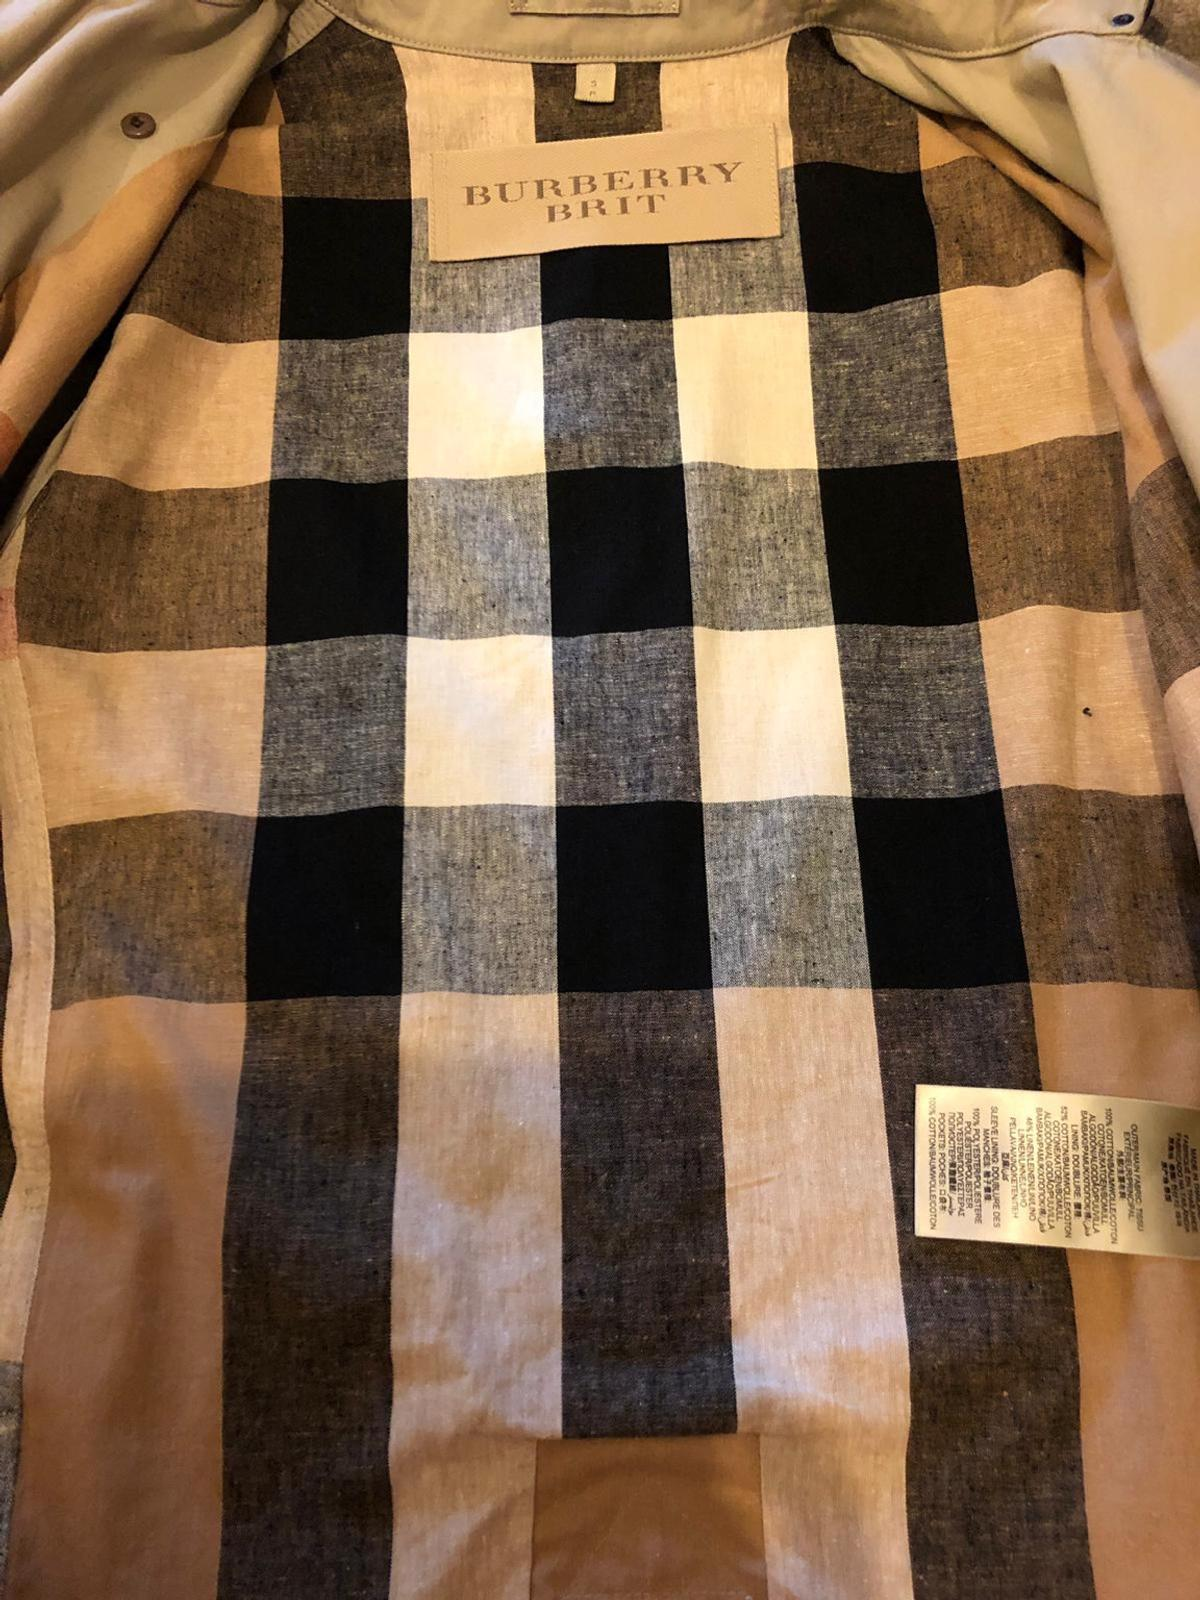 Limited edition hooded Burberry trench coat in SG15 Stotfold